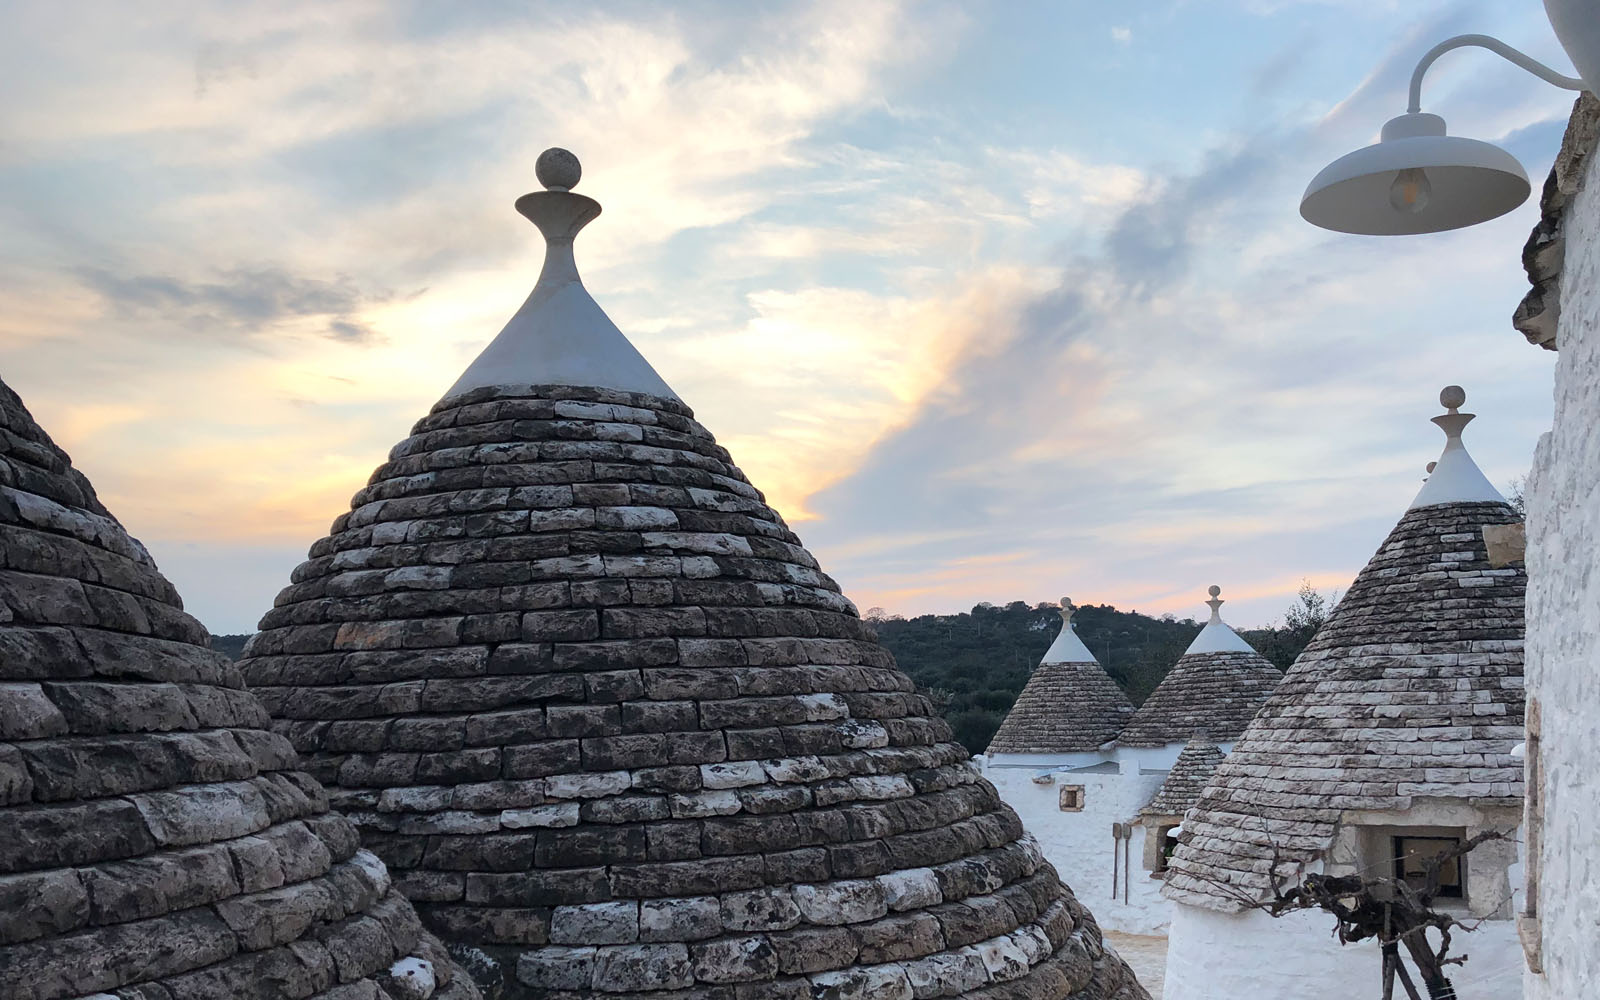 Trulli in Valle d'Itria.